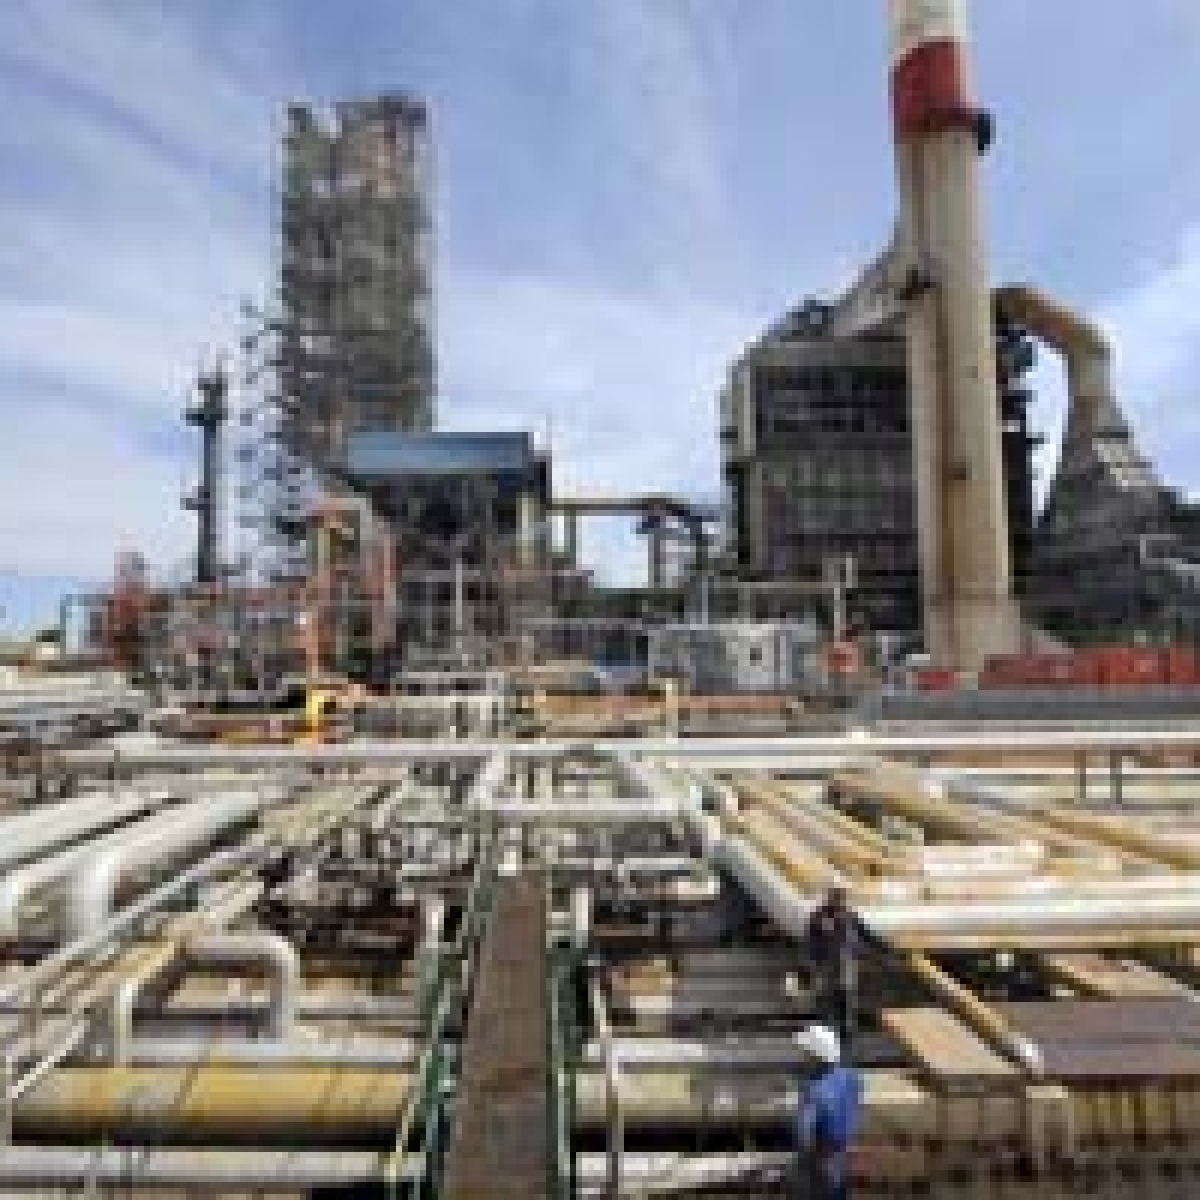 Reliance introduces anti-bribery, anti-money laundering clauses in gas sales pacts